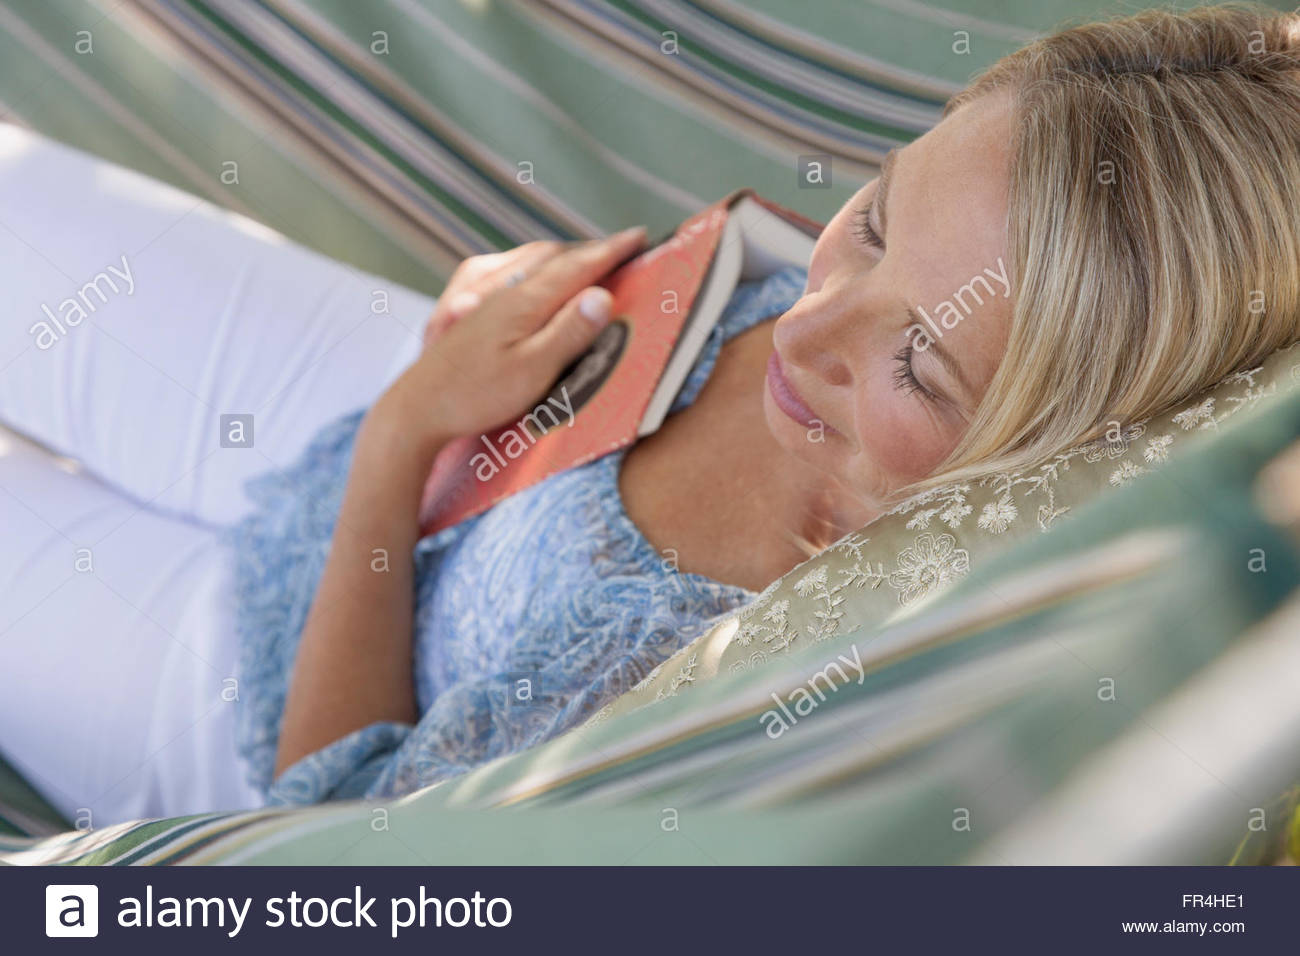 middle-aged woman napping with book in hammock - Stock Image